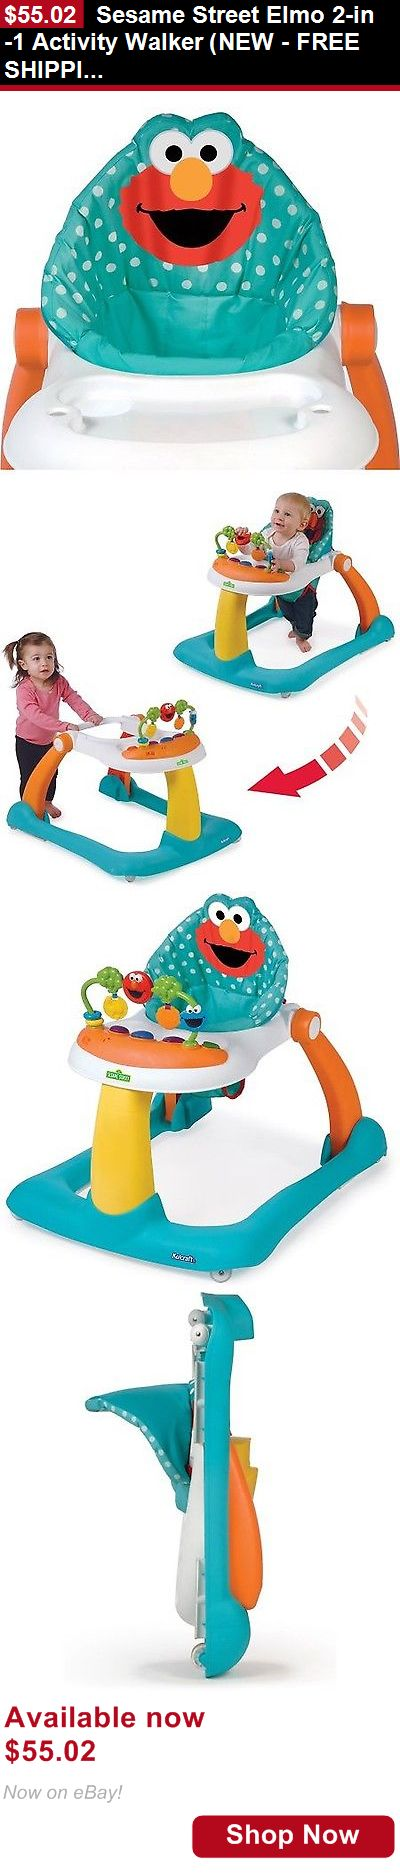 Baby walkers: Sesame Street Elmo 2-In-1 Activity Walker (New - Free Shipping) BUY IT NOW ONLY: $55.02